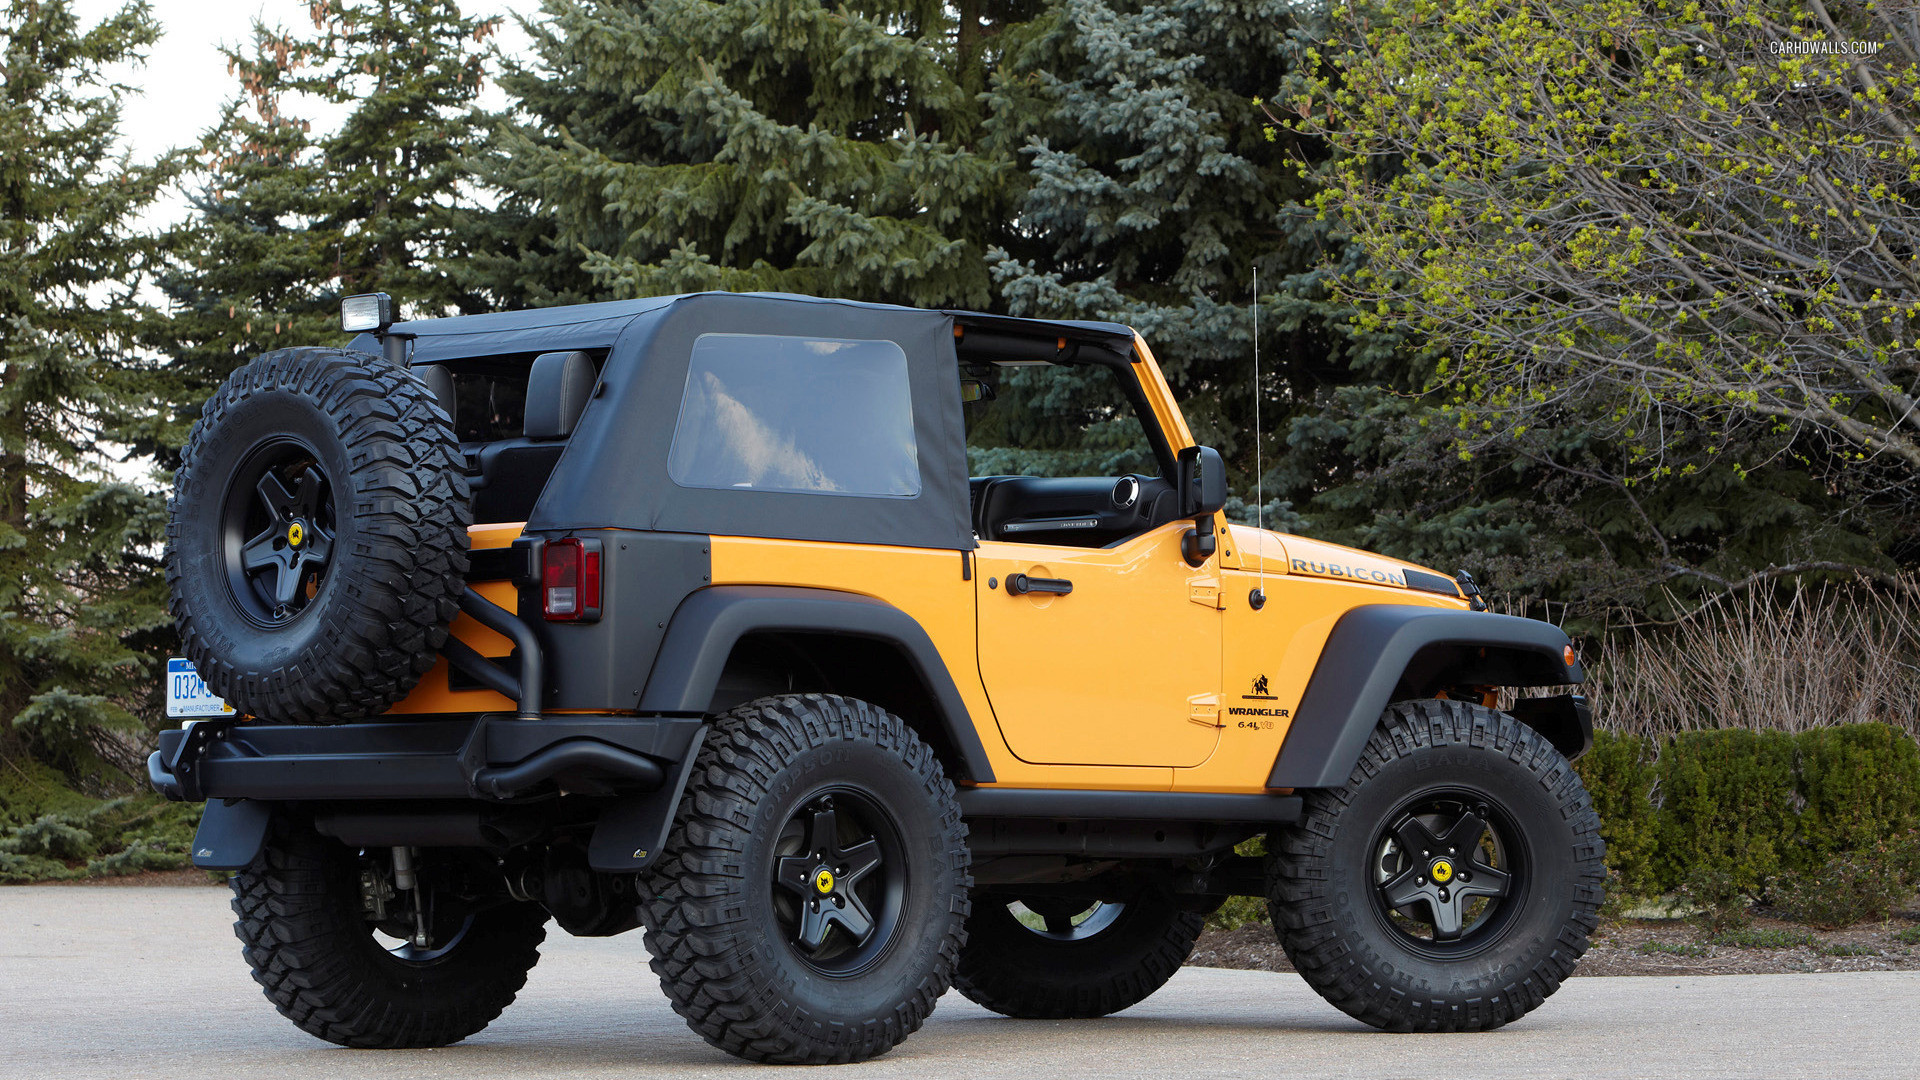 Jeep Wrangler Wallpapers Wallpaper 1920×1080 Jeep Wallpapers (49 Wallpapers)  | Adorable Wallpapers | Wallpapers | Pinterest | Wallpaper